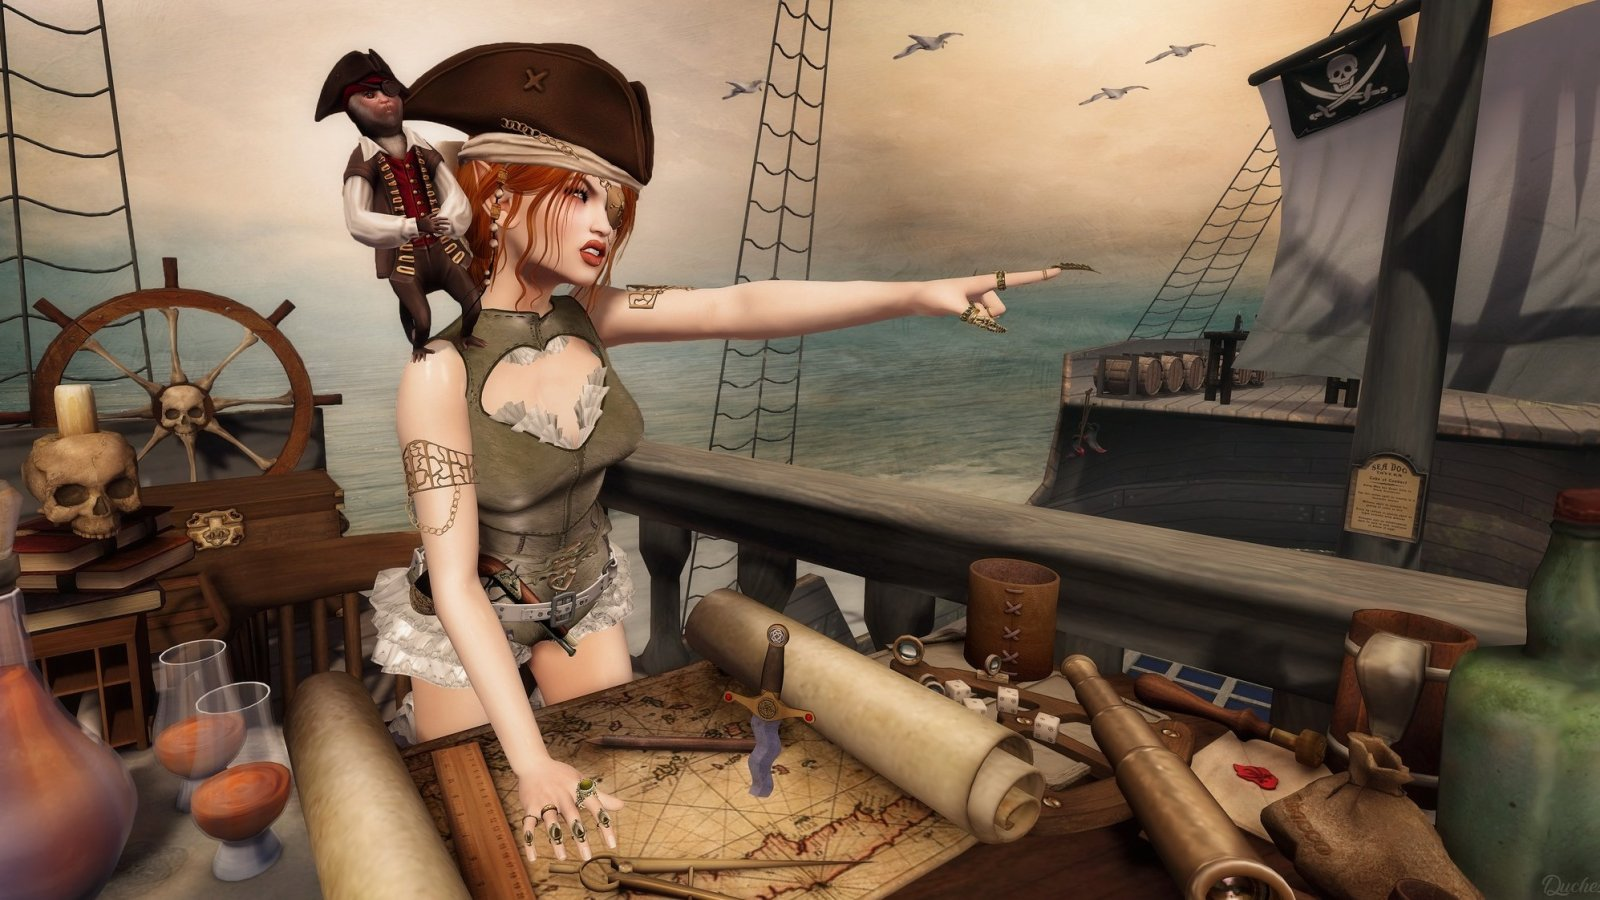 Some days she wanted to make everyone walk the plank……..